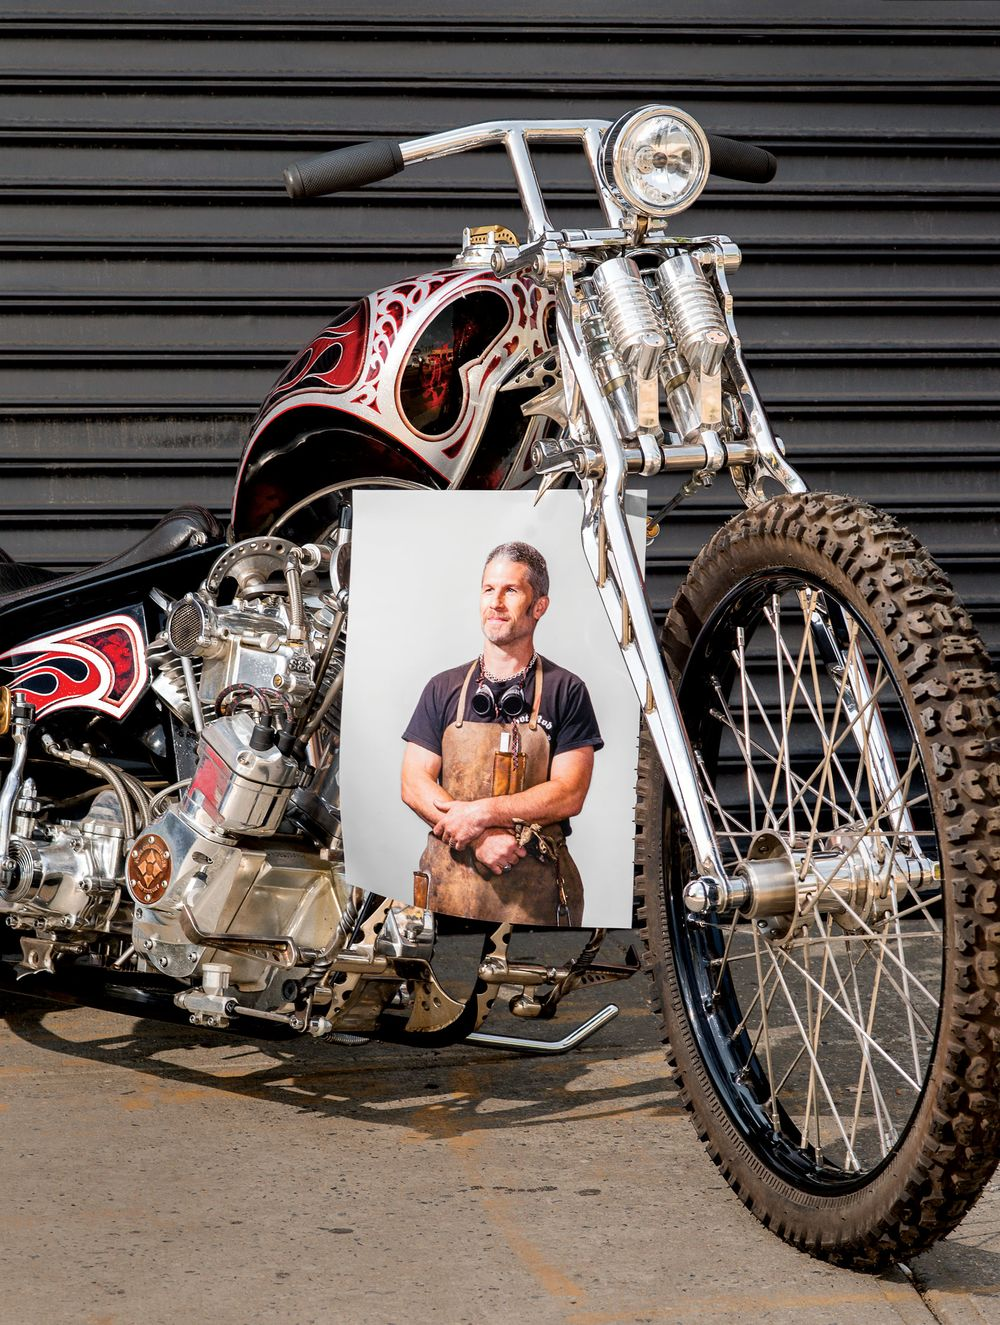 Meet the Maker: The Man Who Creates Custom Motorcycles by Hand